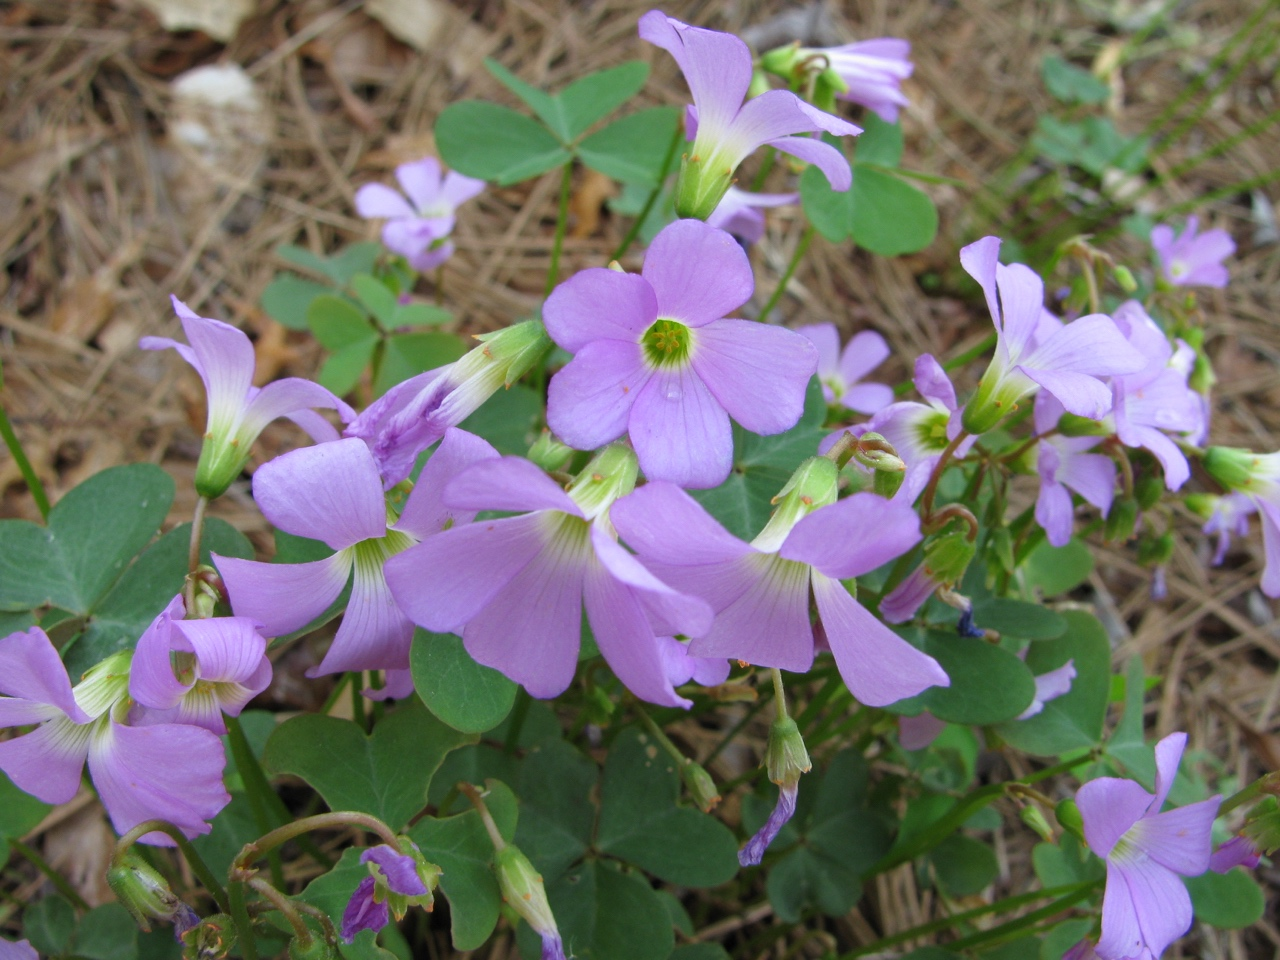 The Scientific Name is Oxalis violacea. You will likely hear them called Violet Wood-sorrel. This picture shows the Close-up of flowers of Oxalis violacea